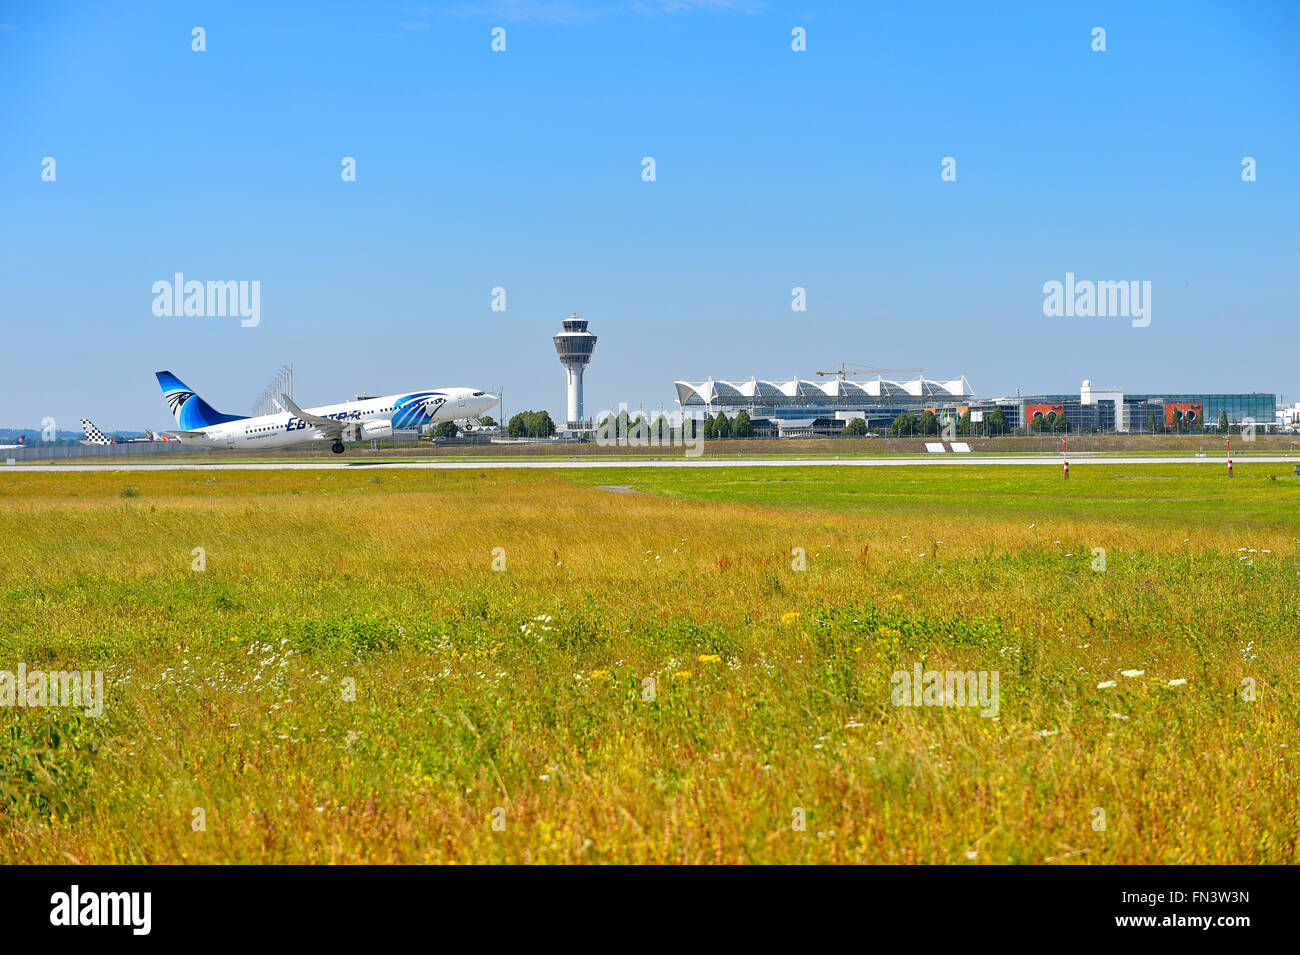 Egypt Air, Airlines, Boeing, B 737 - 800, B737, take of, take off, aircraft, airport, overview, panorama, view, - Stock Image